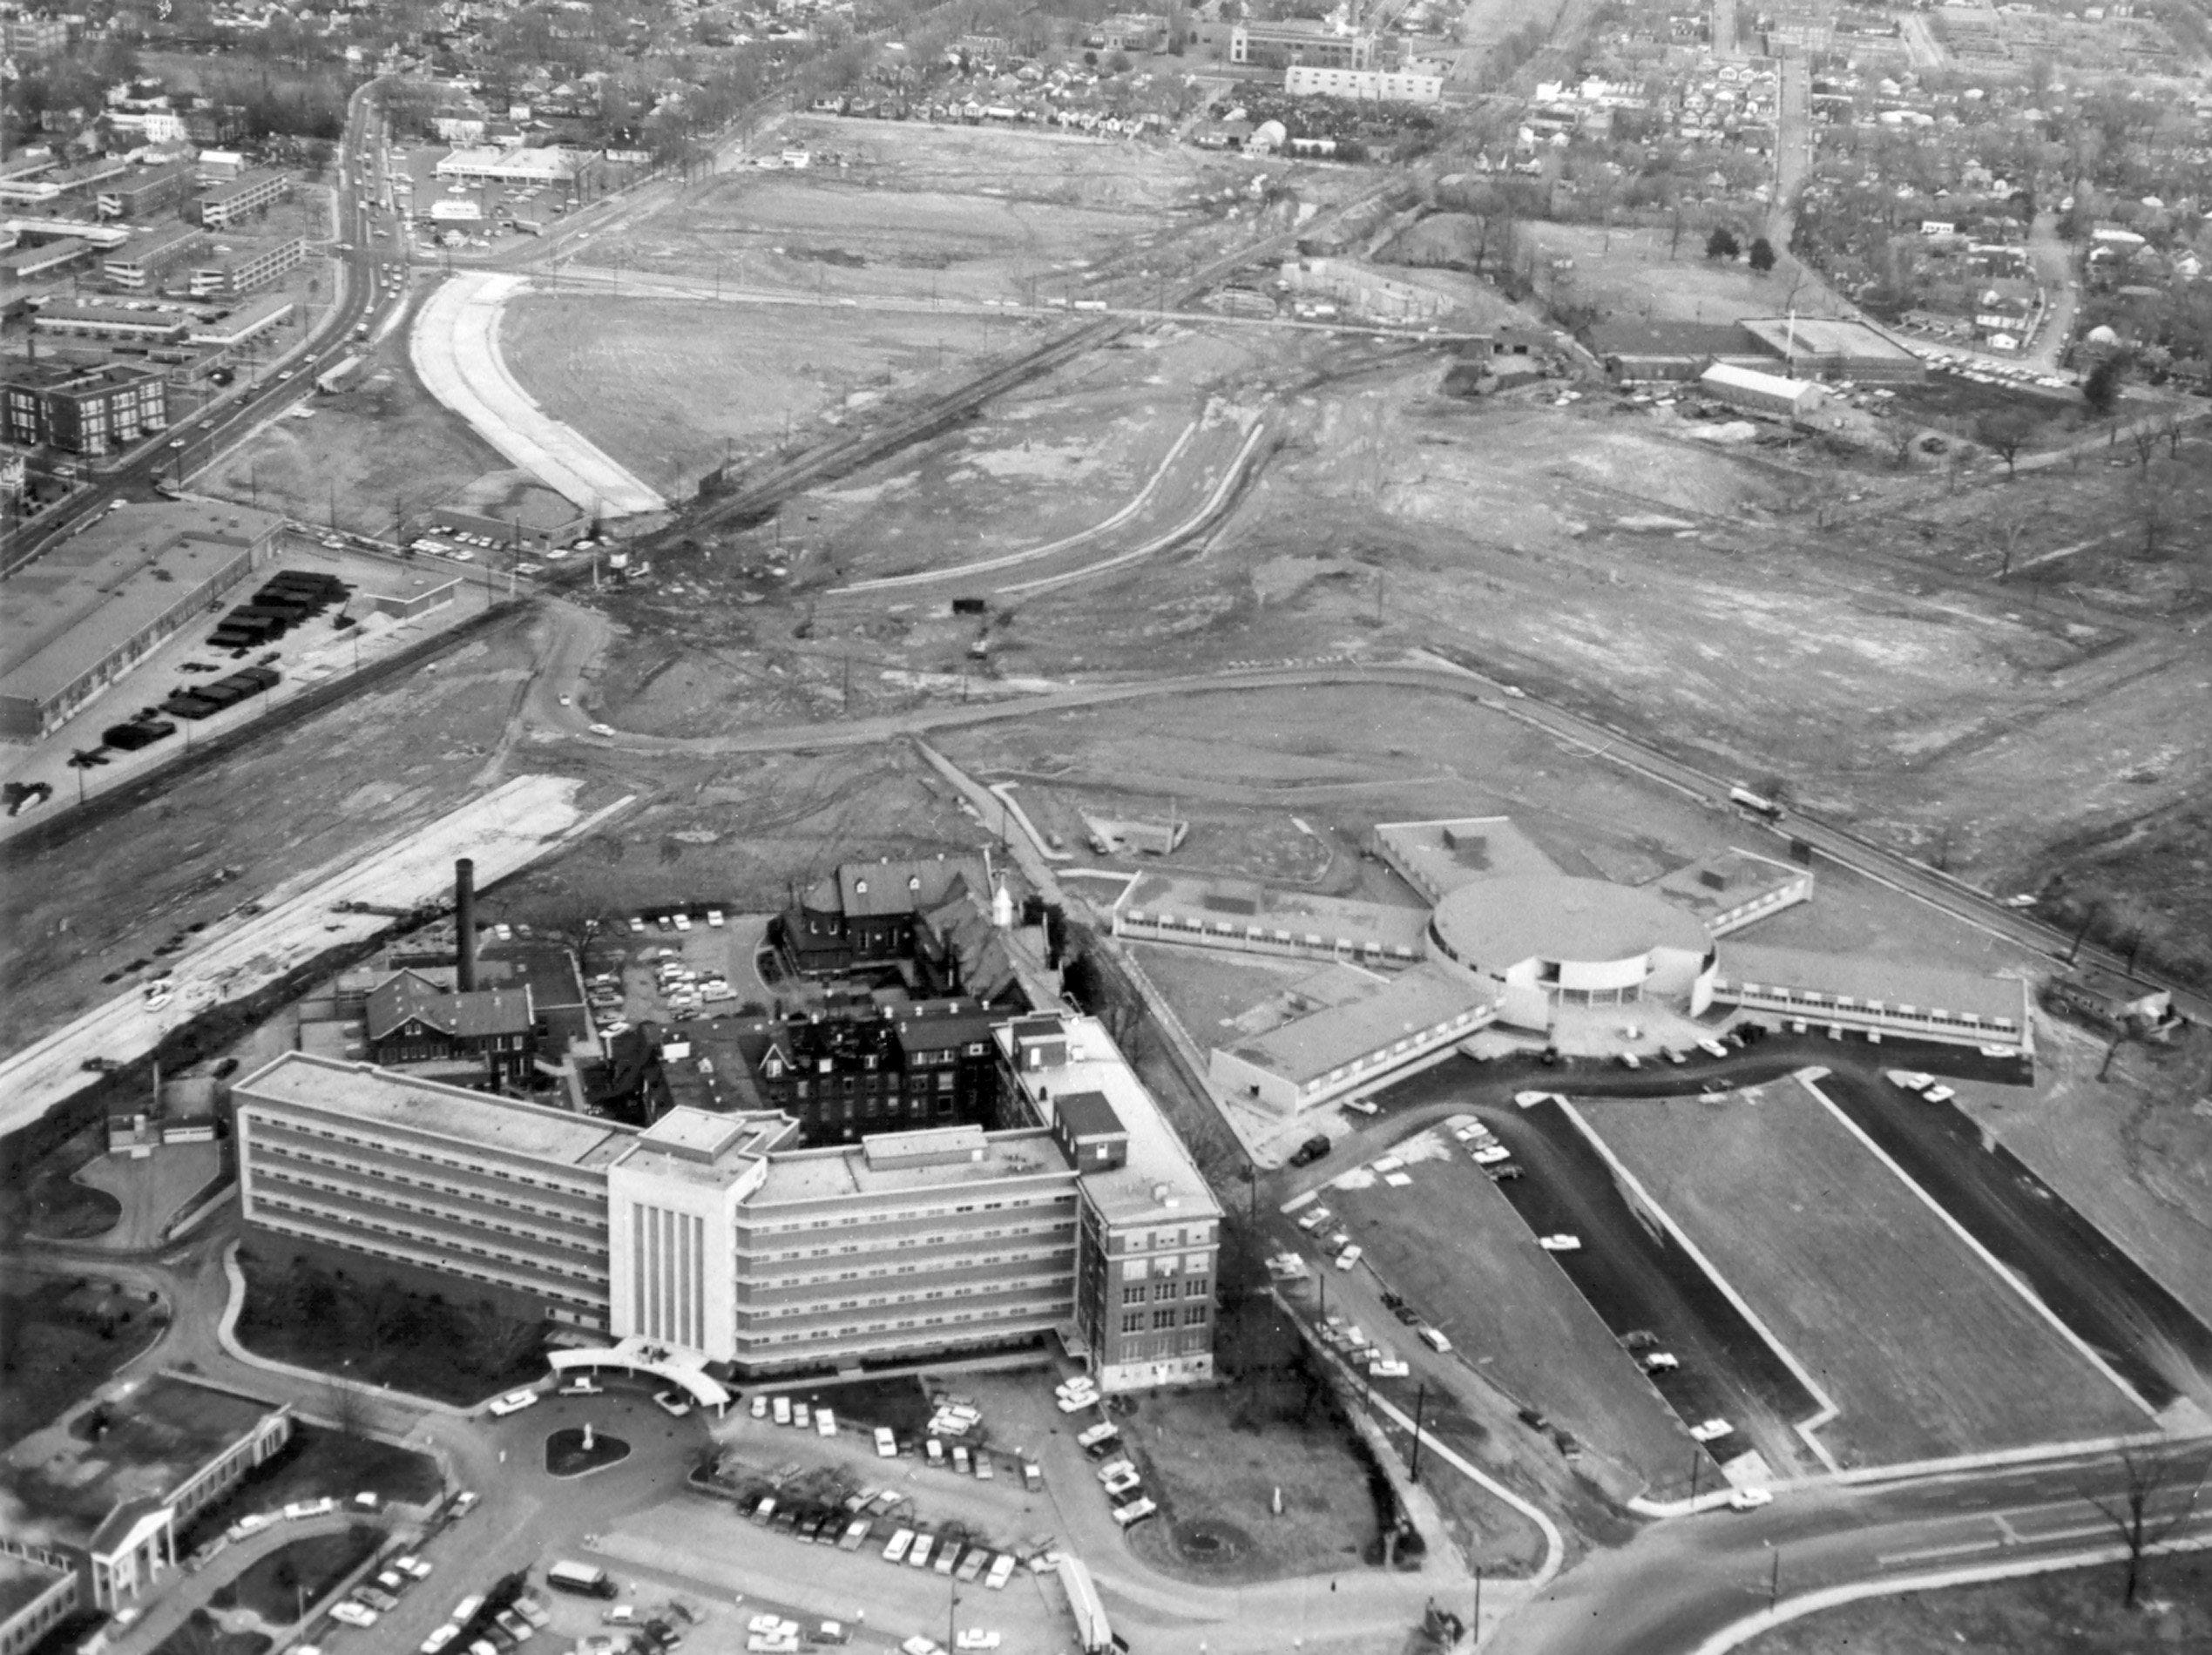 St. Francis Hospital, left, and St. Jude Children's Research Hospital stand together in the Jackson Avenue urban renewal area in this aerial image from December 1961.